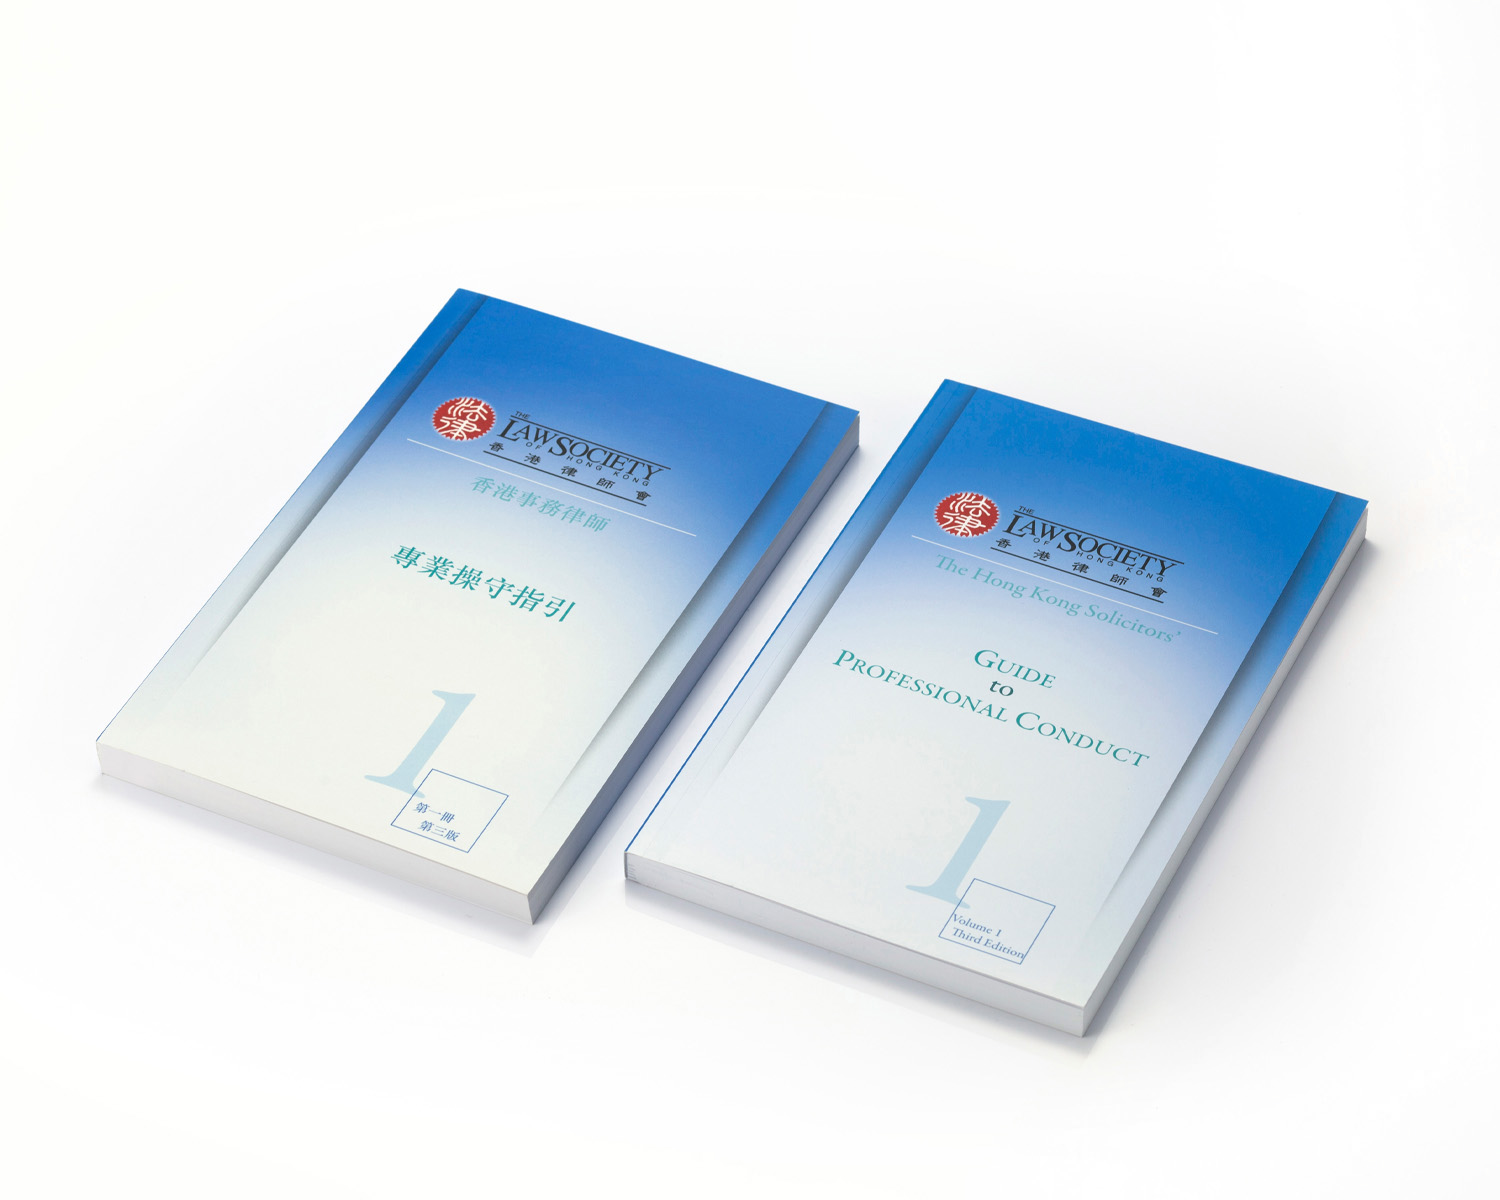 The Hong Kong Solicitors  Guide To Professional Conduct - Volume 1